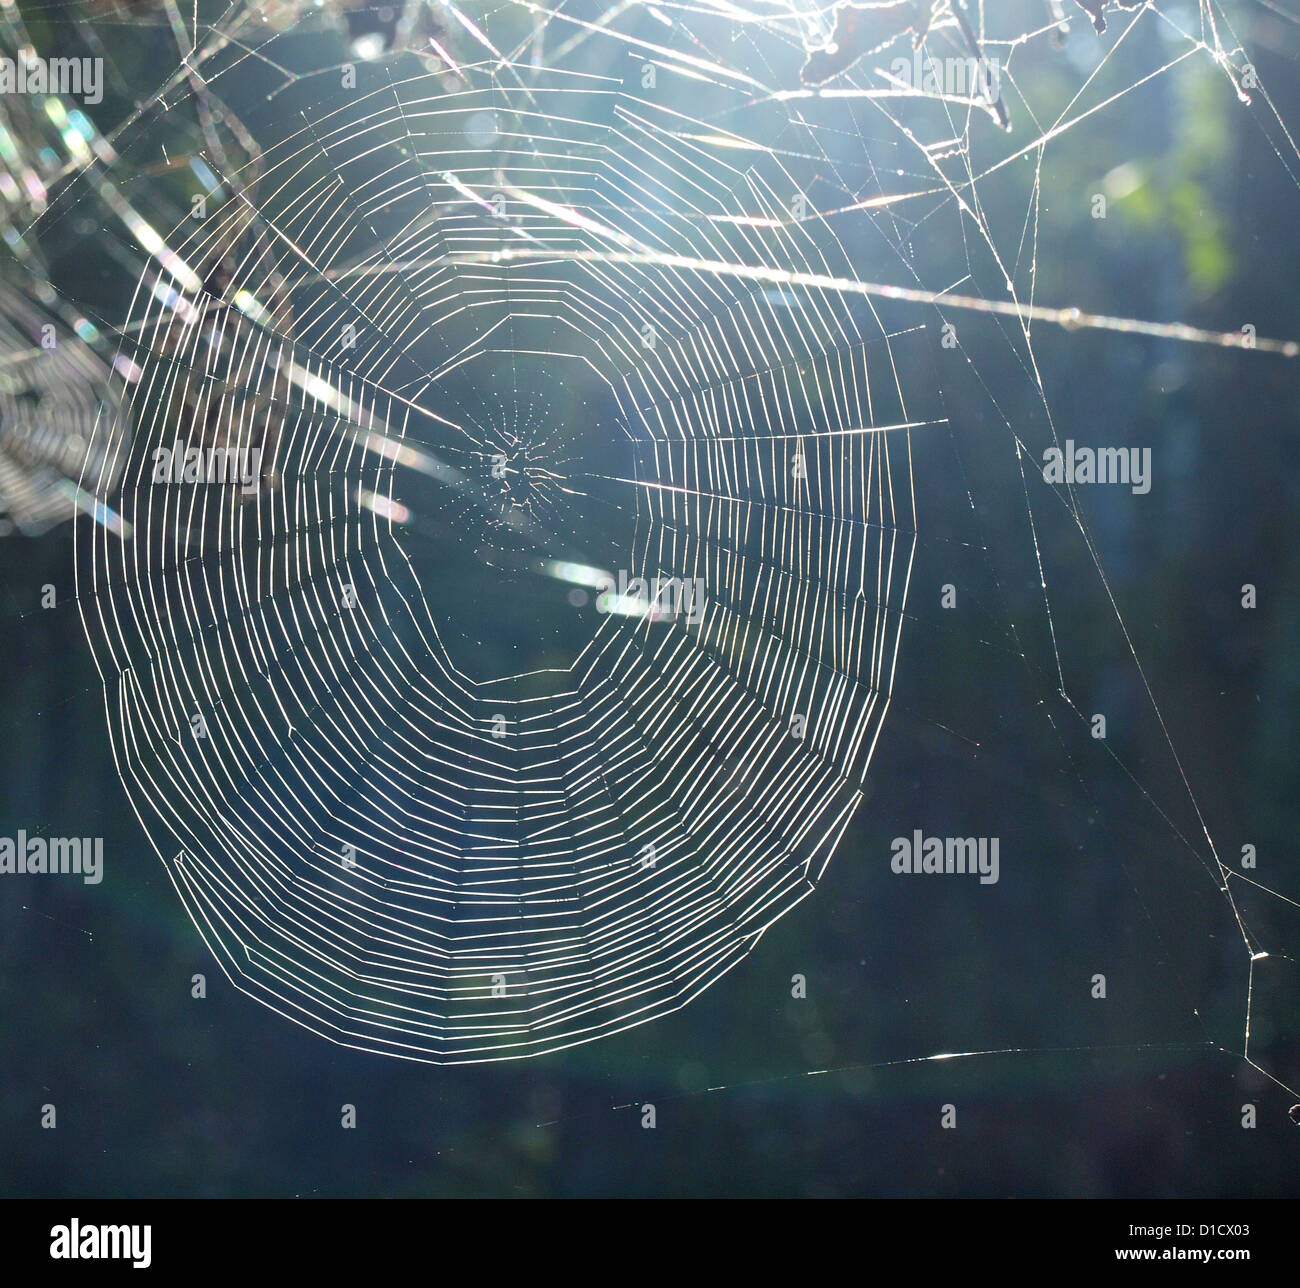 Spider Web in Sunshine - Stock Image